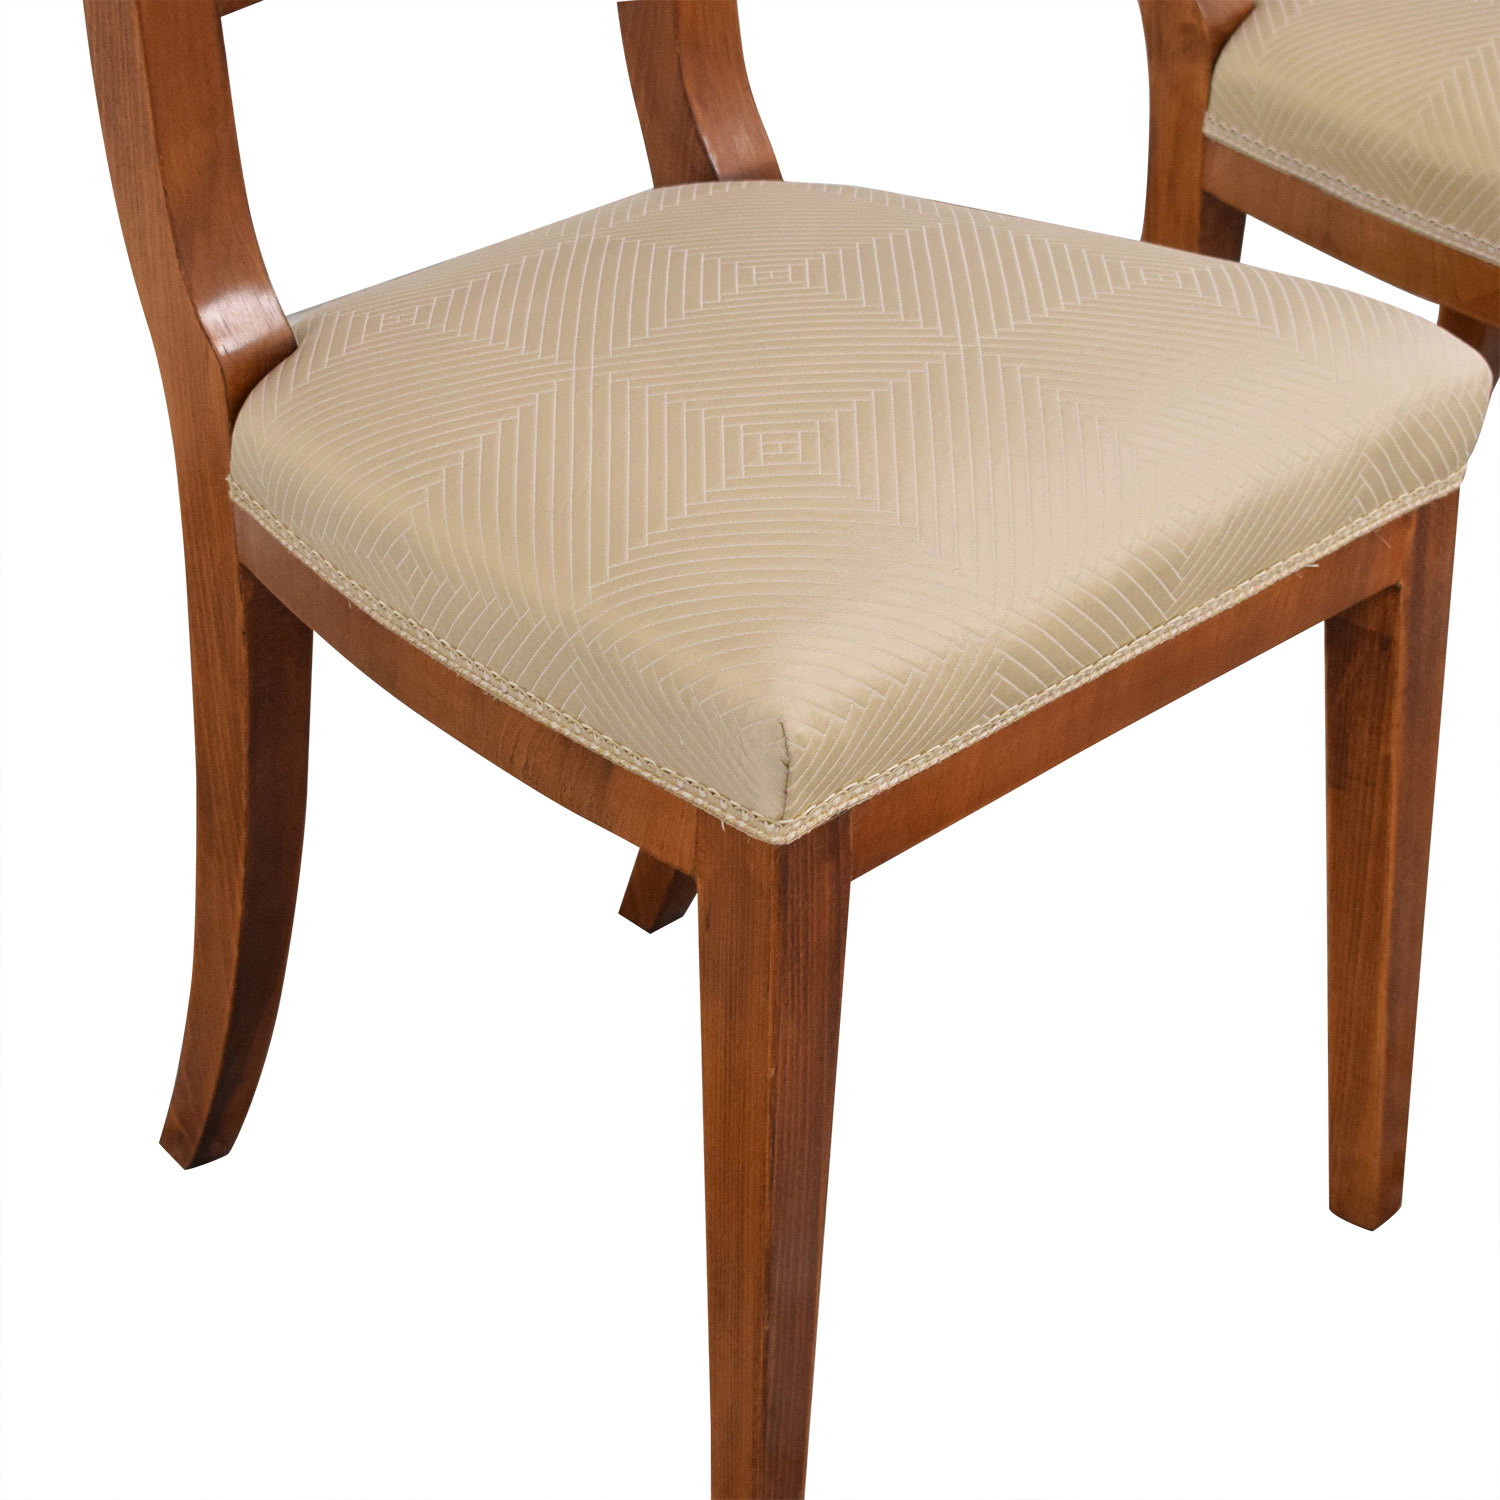 ABC Carpet & Home Upholstered Dining Chairs nj